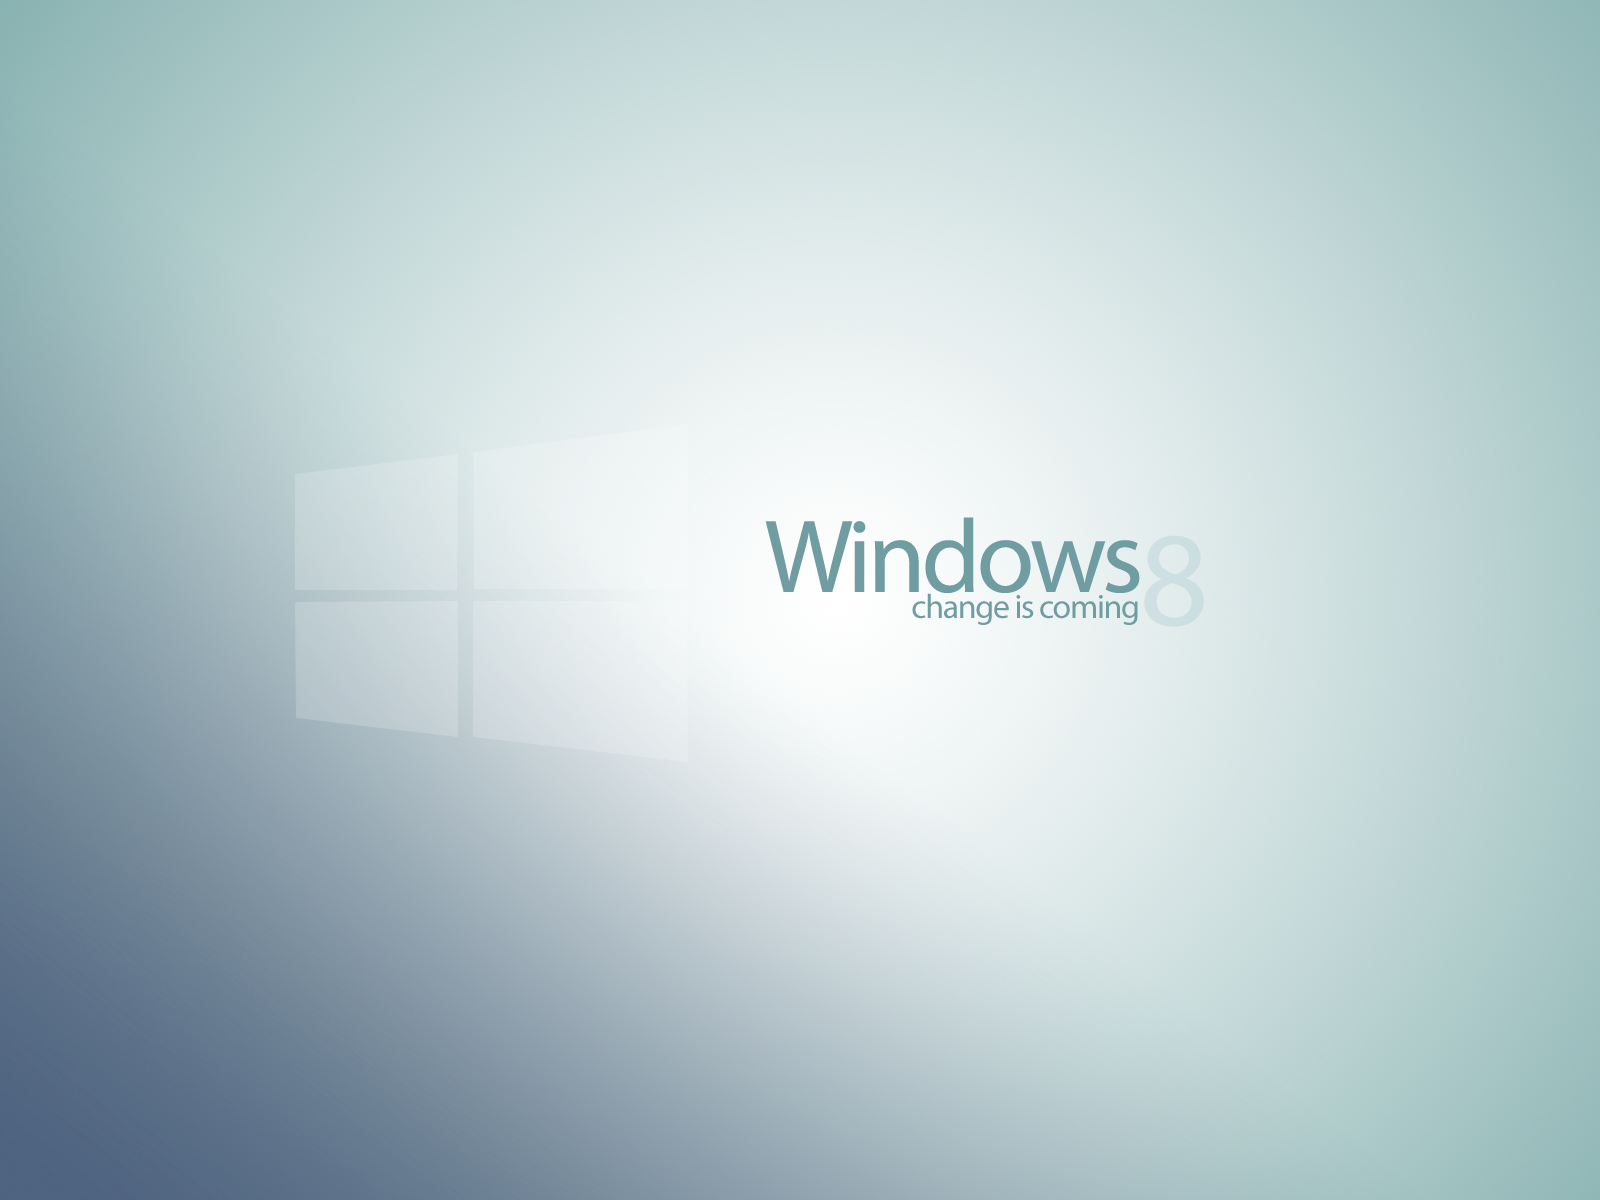 windows 8 concept new logo wallpaper #3danielskrzypon on